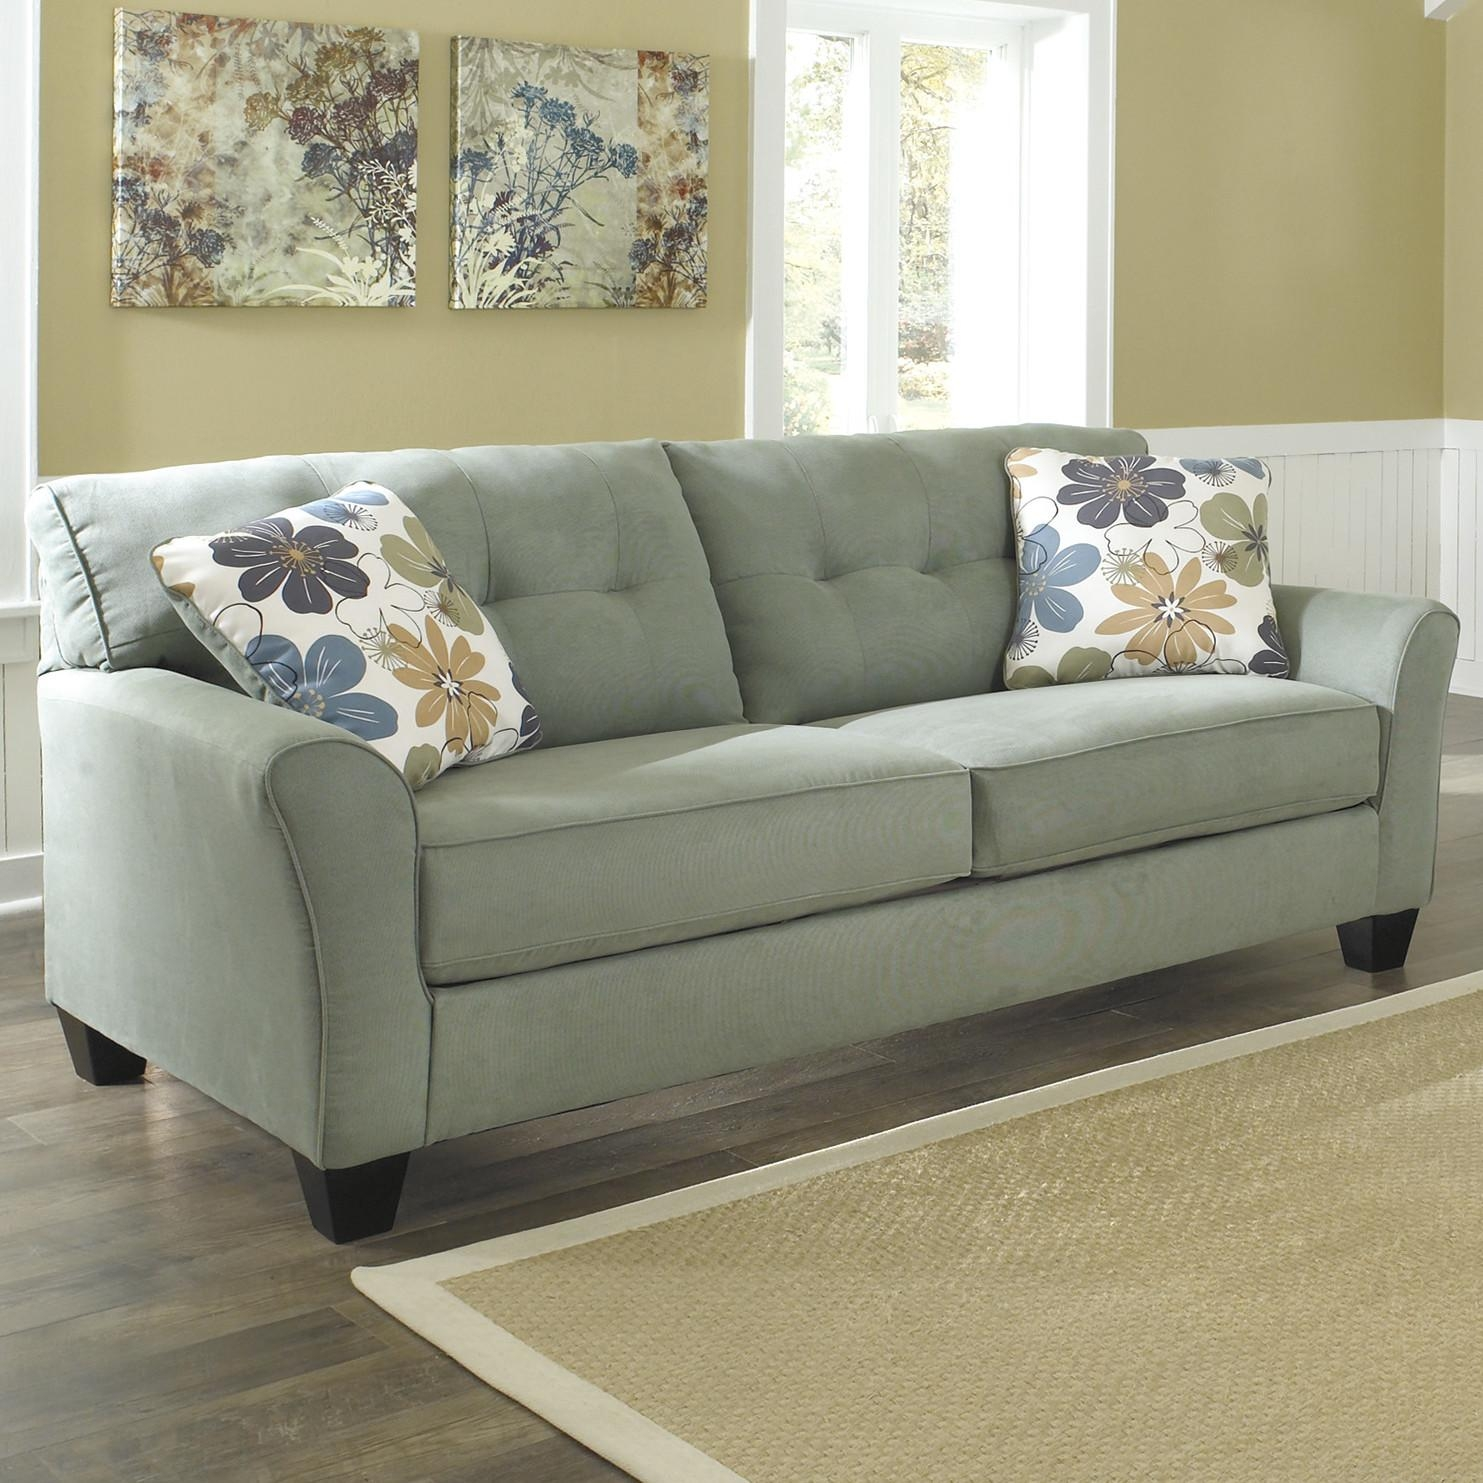 Your Guide To Space Saver Sofas For Tiny Spaces Within Small Scale Sofas (Image 20 of 20)